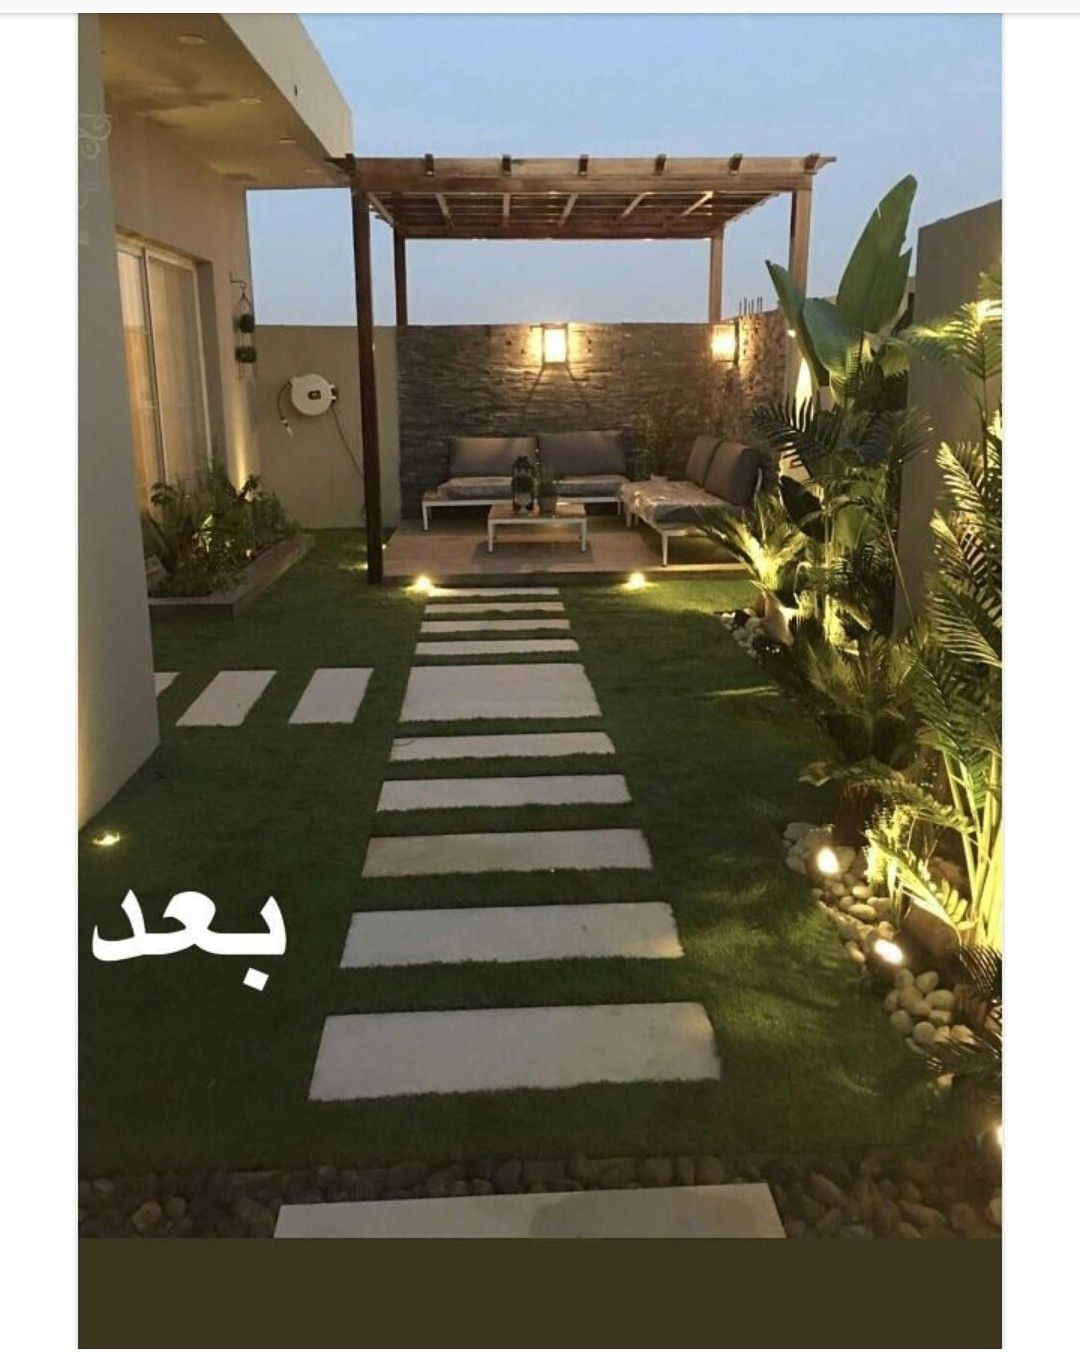 Pin By Wwsaqw On Home Luxury Garden Design Rooftop Terrace Design Rooftop Design